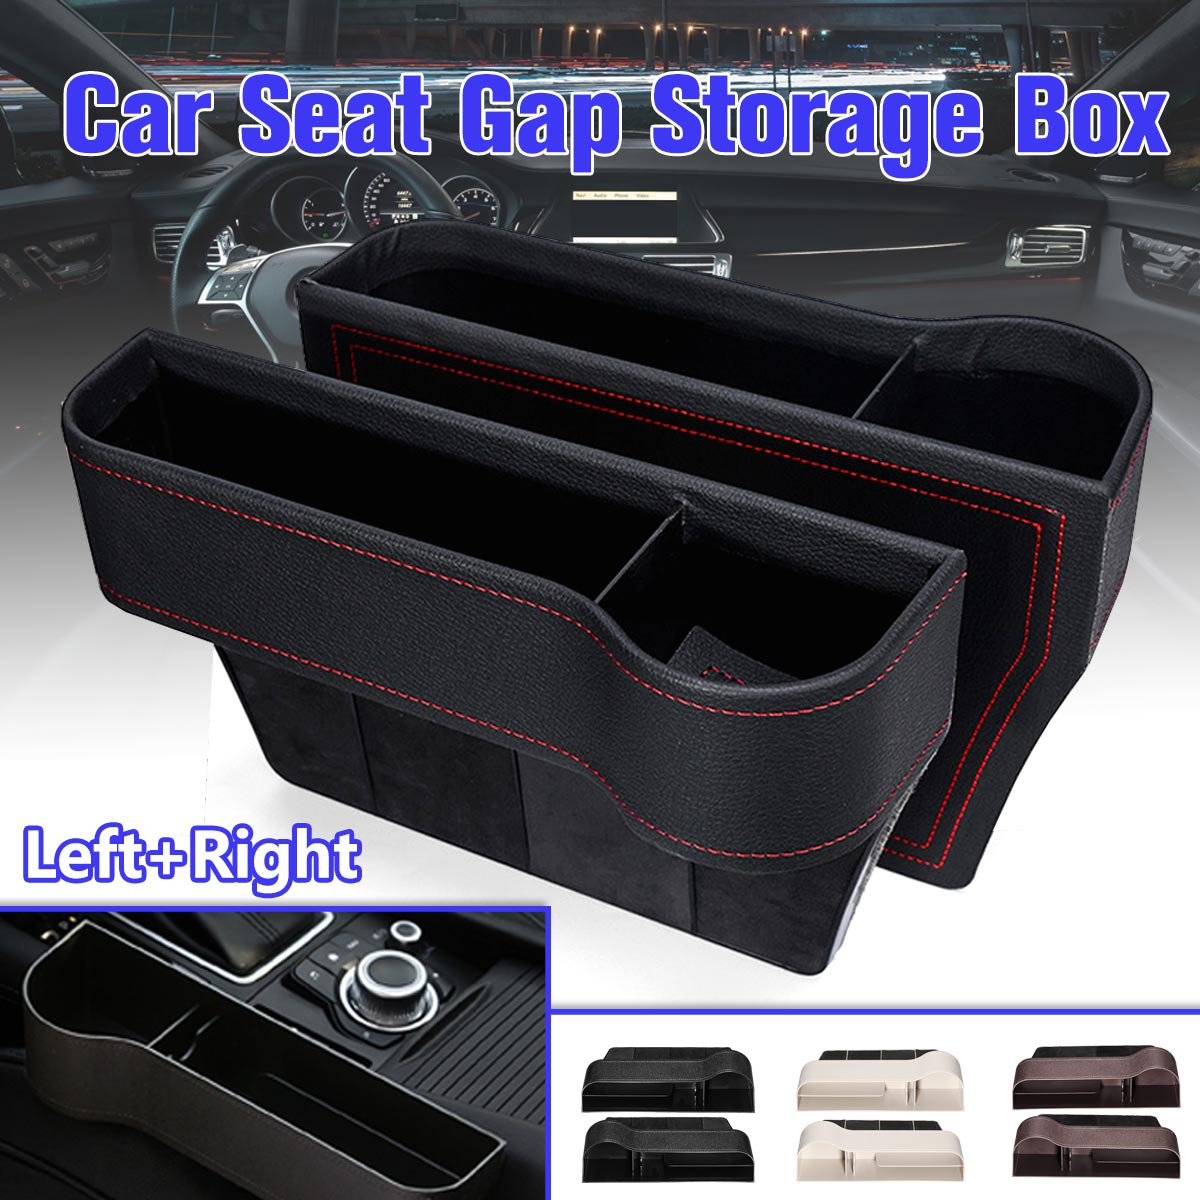 Pair Universal Left/Right Car Seat Crevice Gaps Storage Box ABS Plastic Auto for Pockets Organizers Drink holder(China)